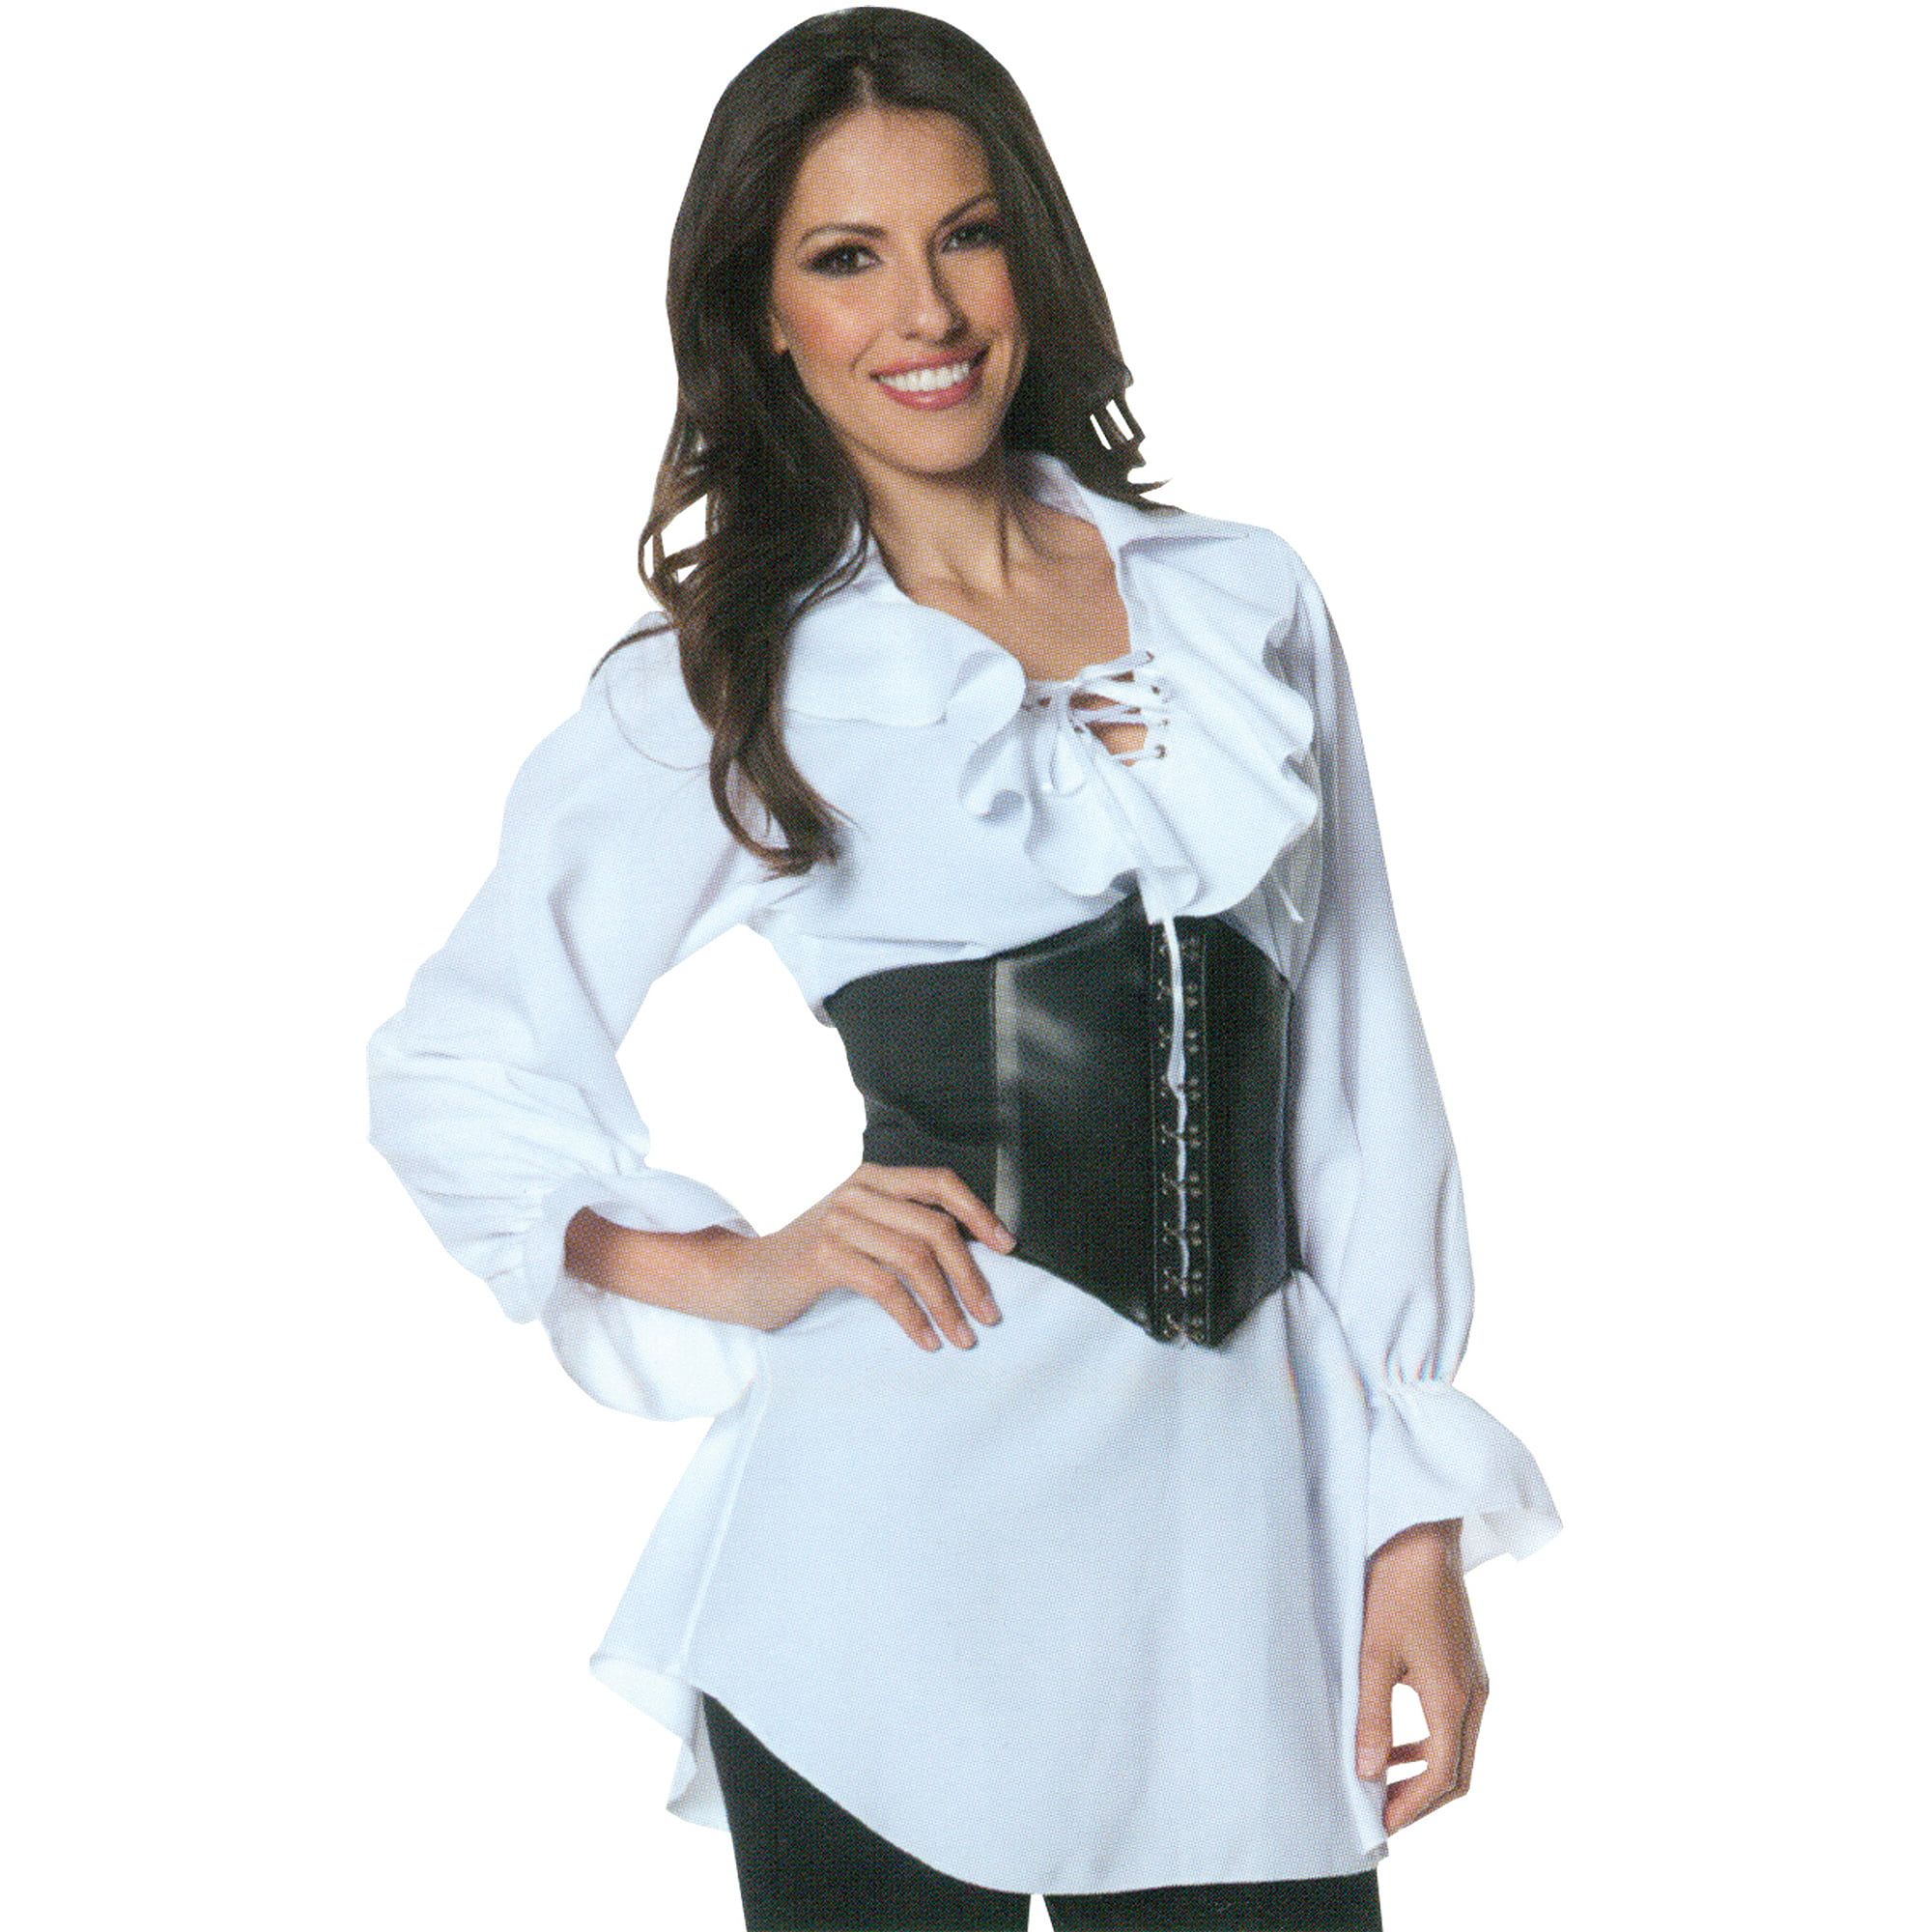 Pirate laced front blouse adult halloween costume walmart solutioingenieria